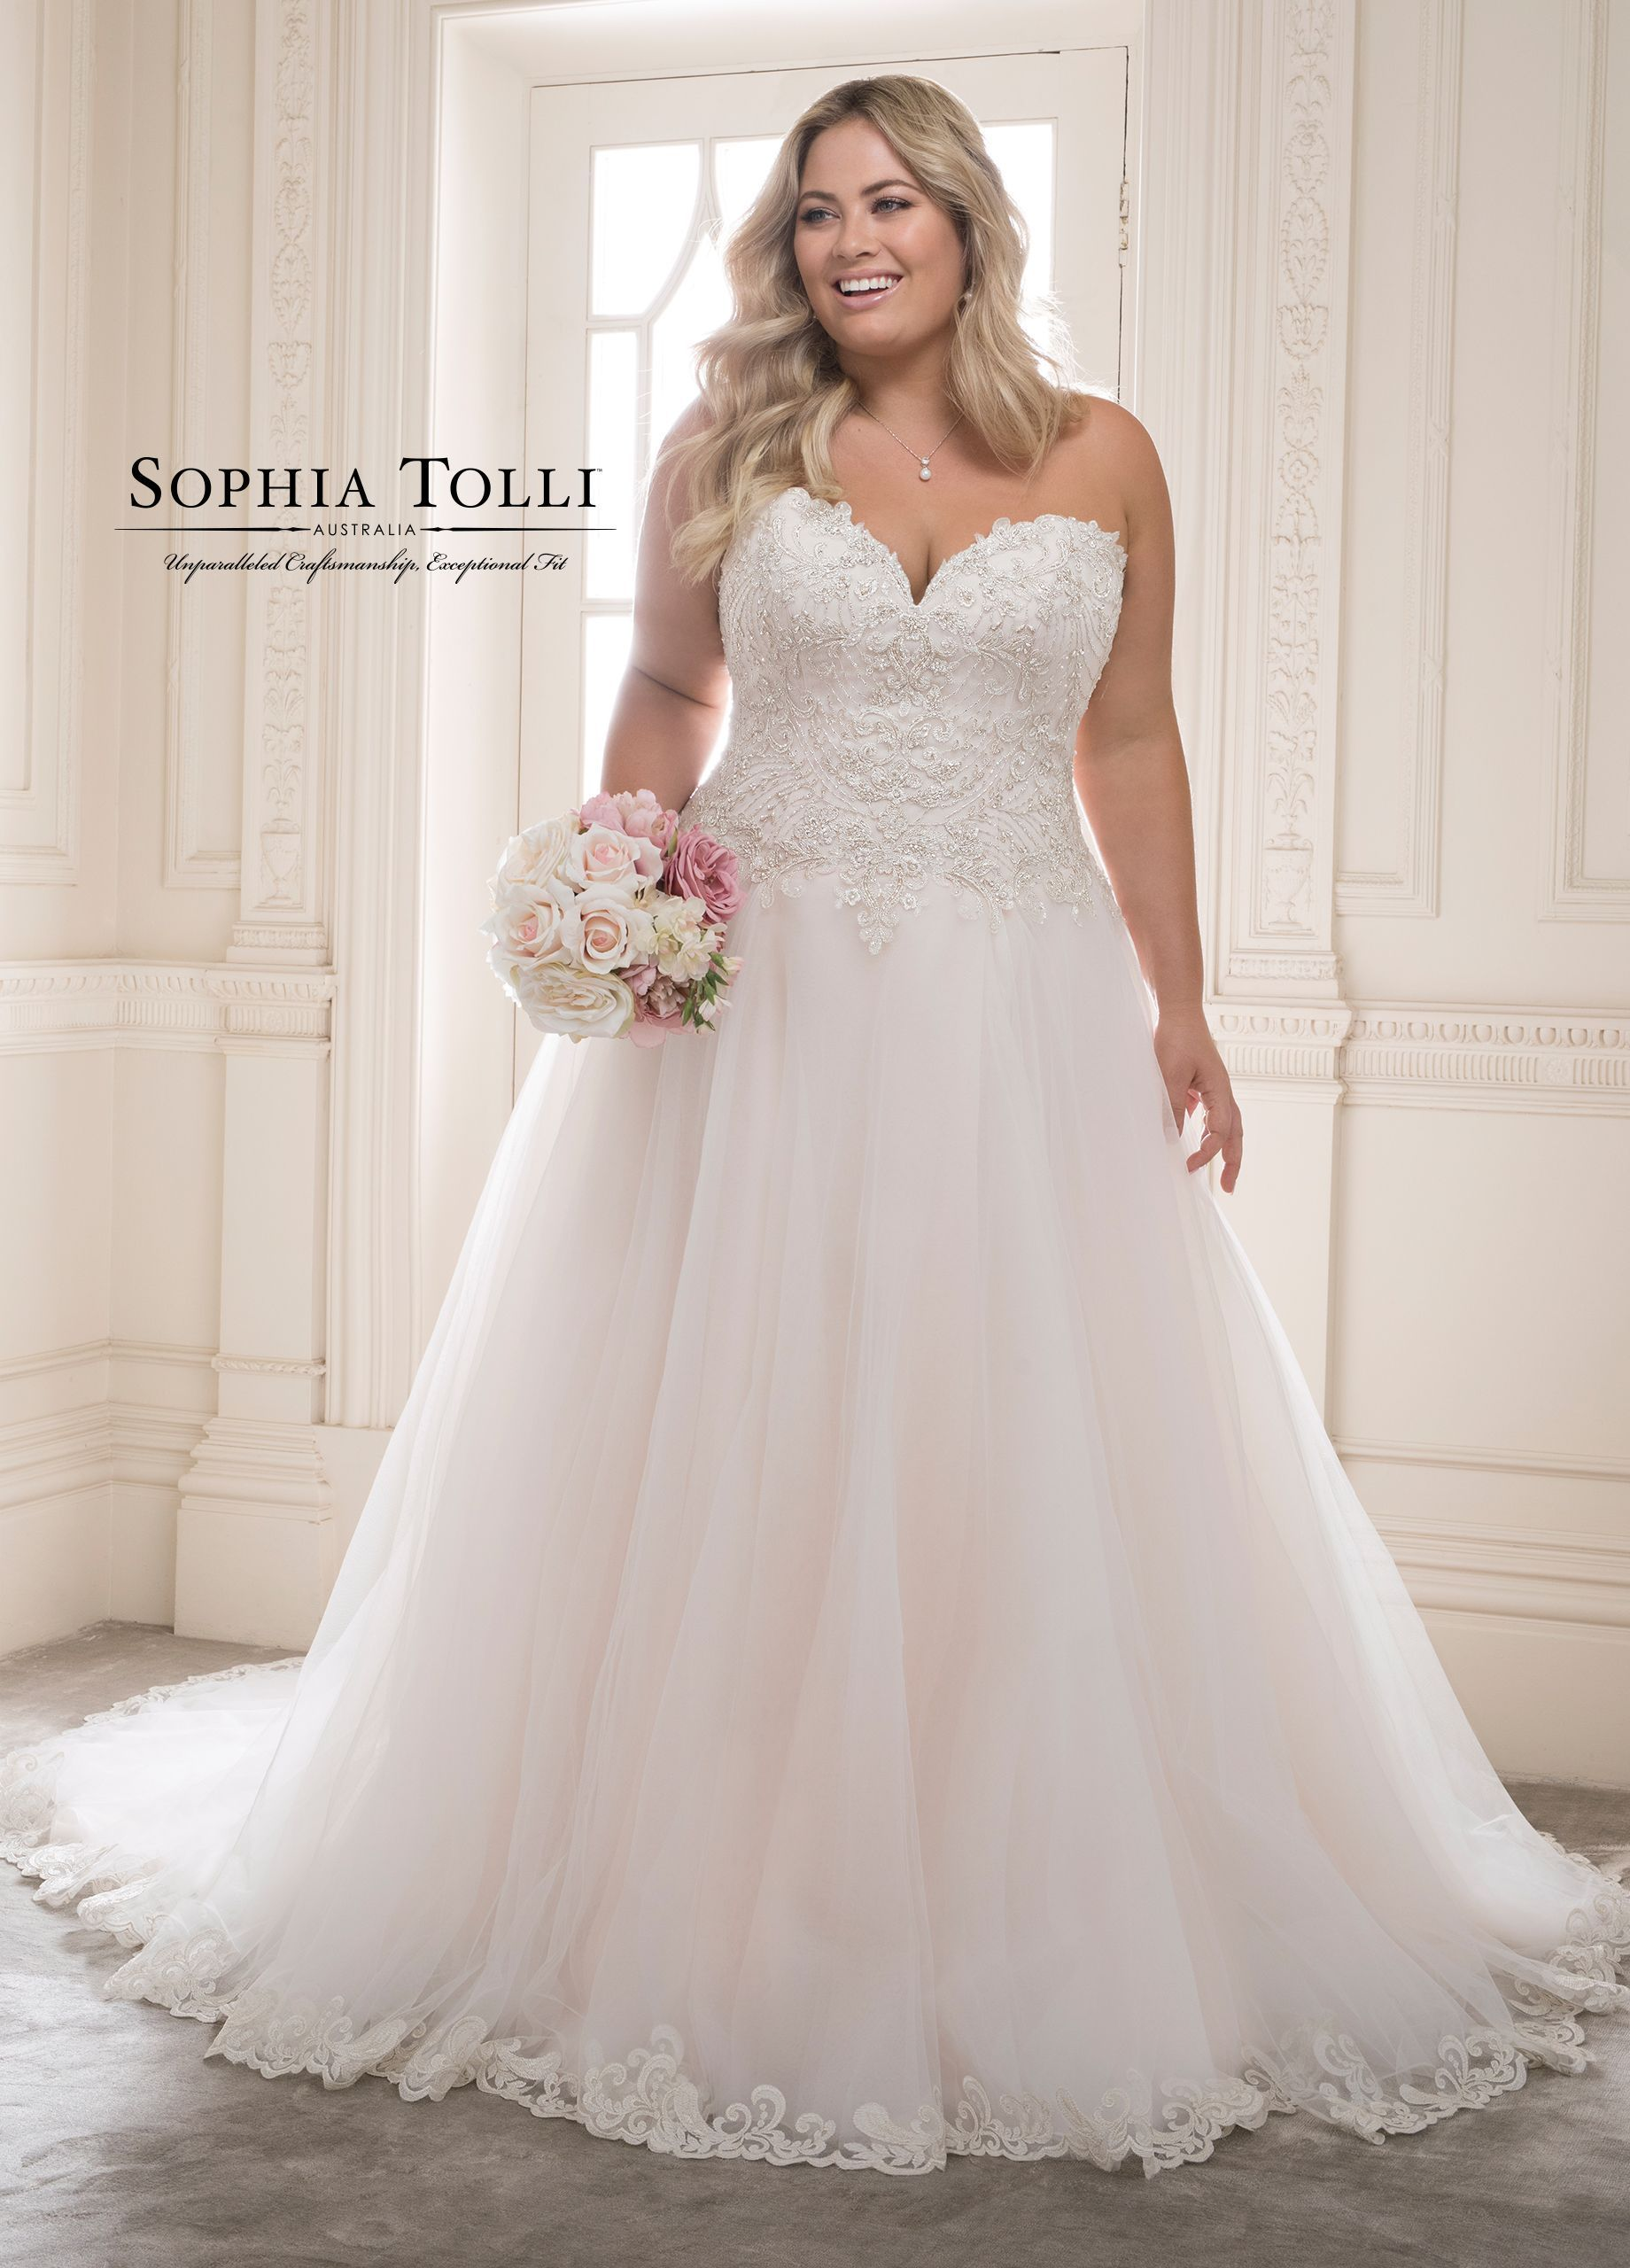 Royal Misty Plus Size Tulle Ballgown Wedding Dress Y21816 Morganite Tulleballgown Sophi Ball Gowns Wedding Plus Wedding Dresses Sophia Tolli Wedding Dresses [ 2560 x 1840 Pixel ]